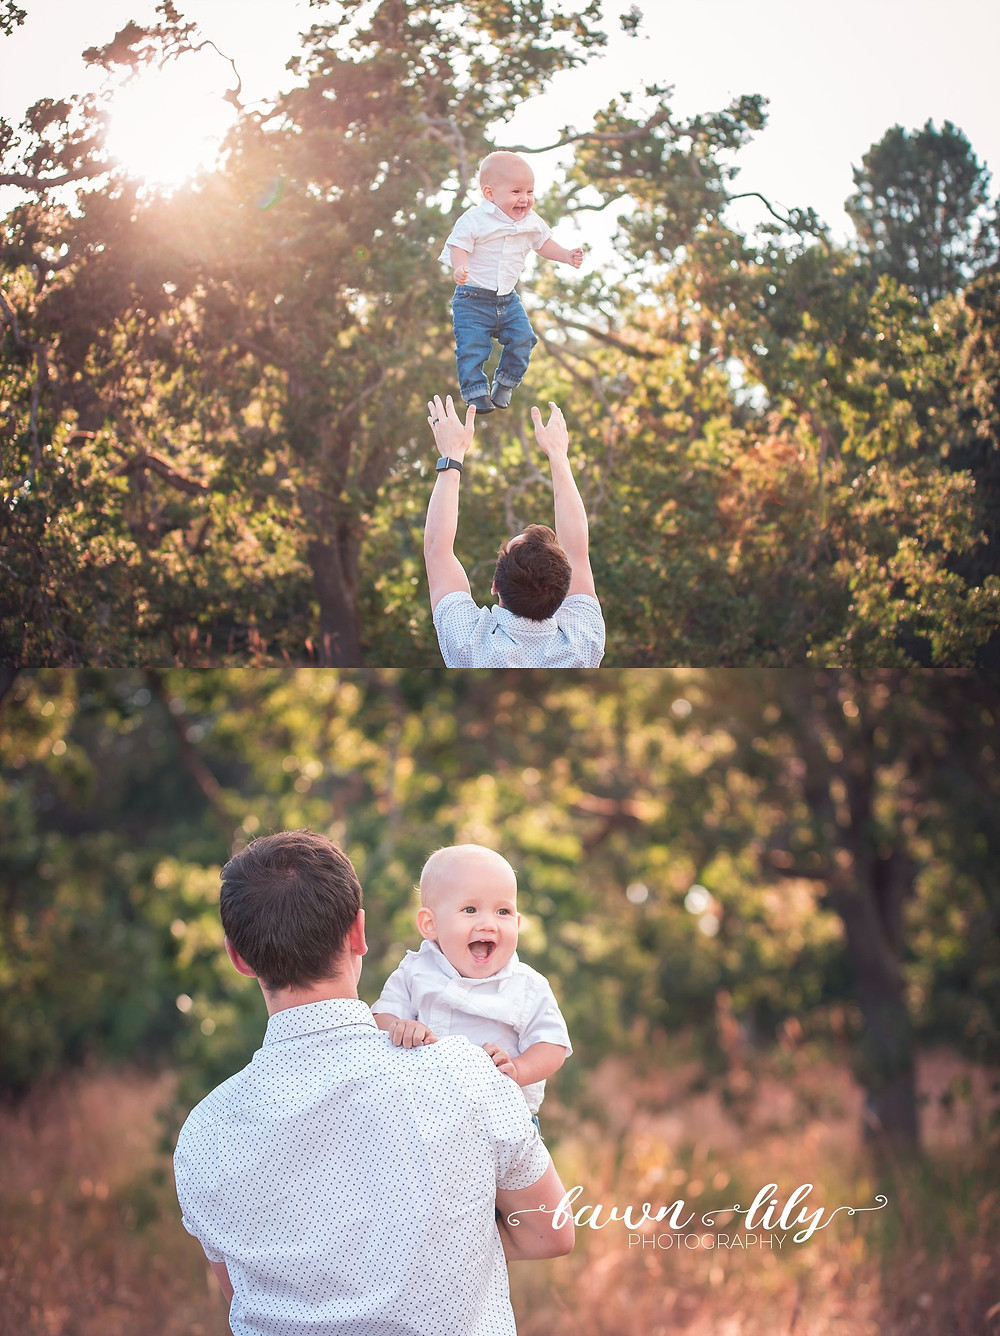 Victoria BC Family Photography, Dad playing with baby, getting dad on board for family photos